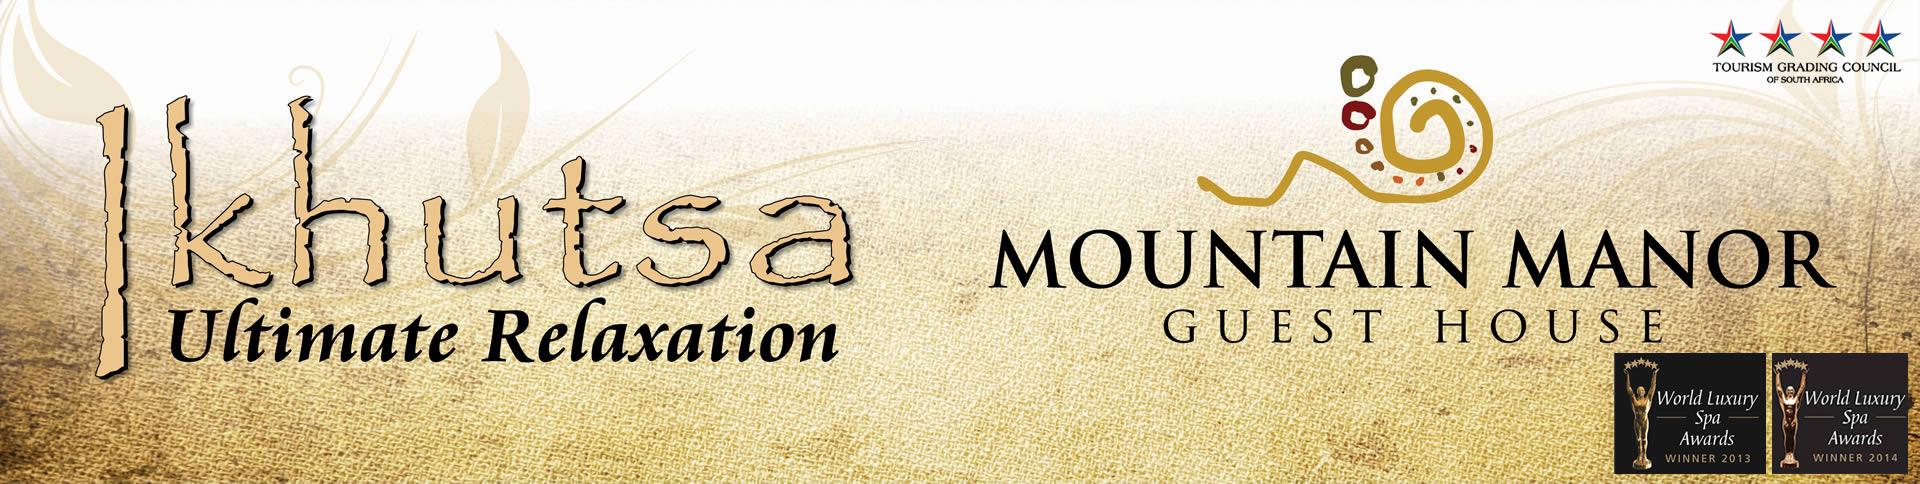 Ikhutsa Mountain Manor  Guest House, Day Spa & Deli